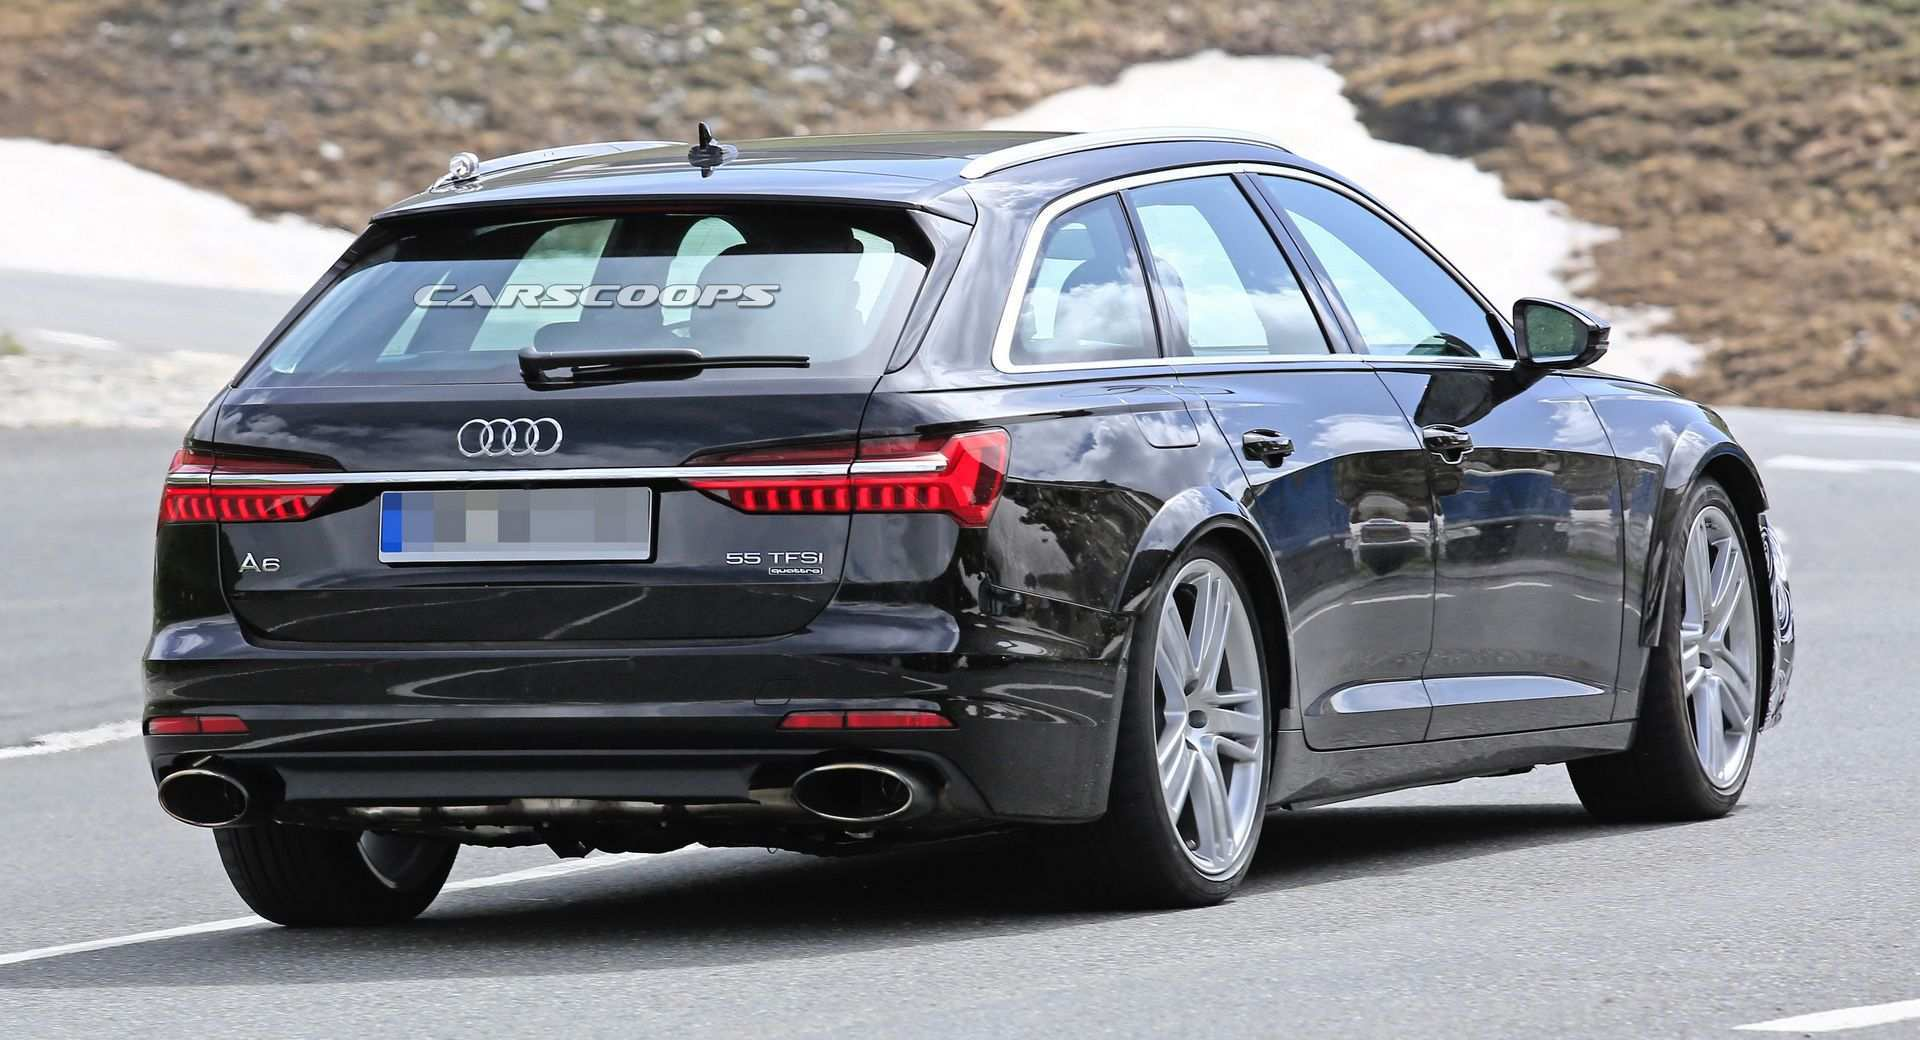 67 All New 2020 Audi Rs6 Wagon Photos